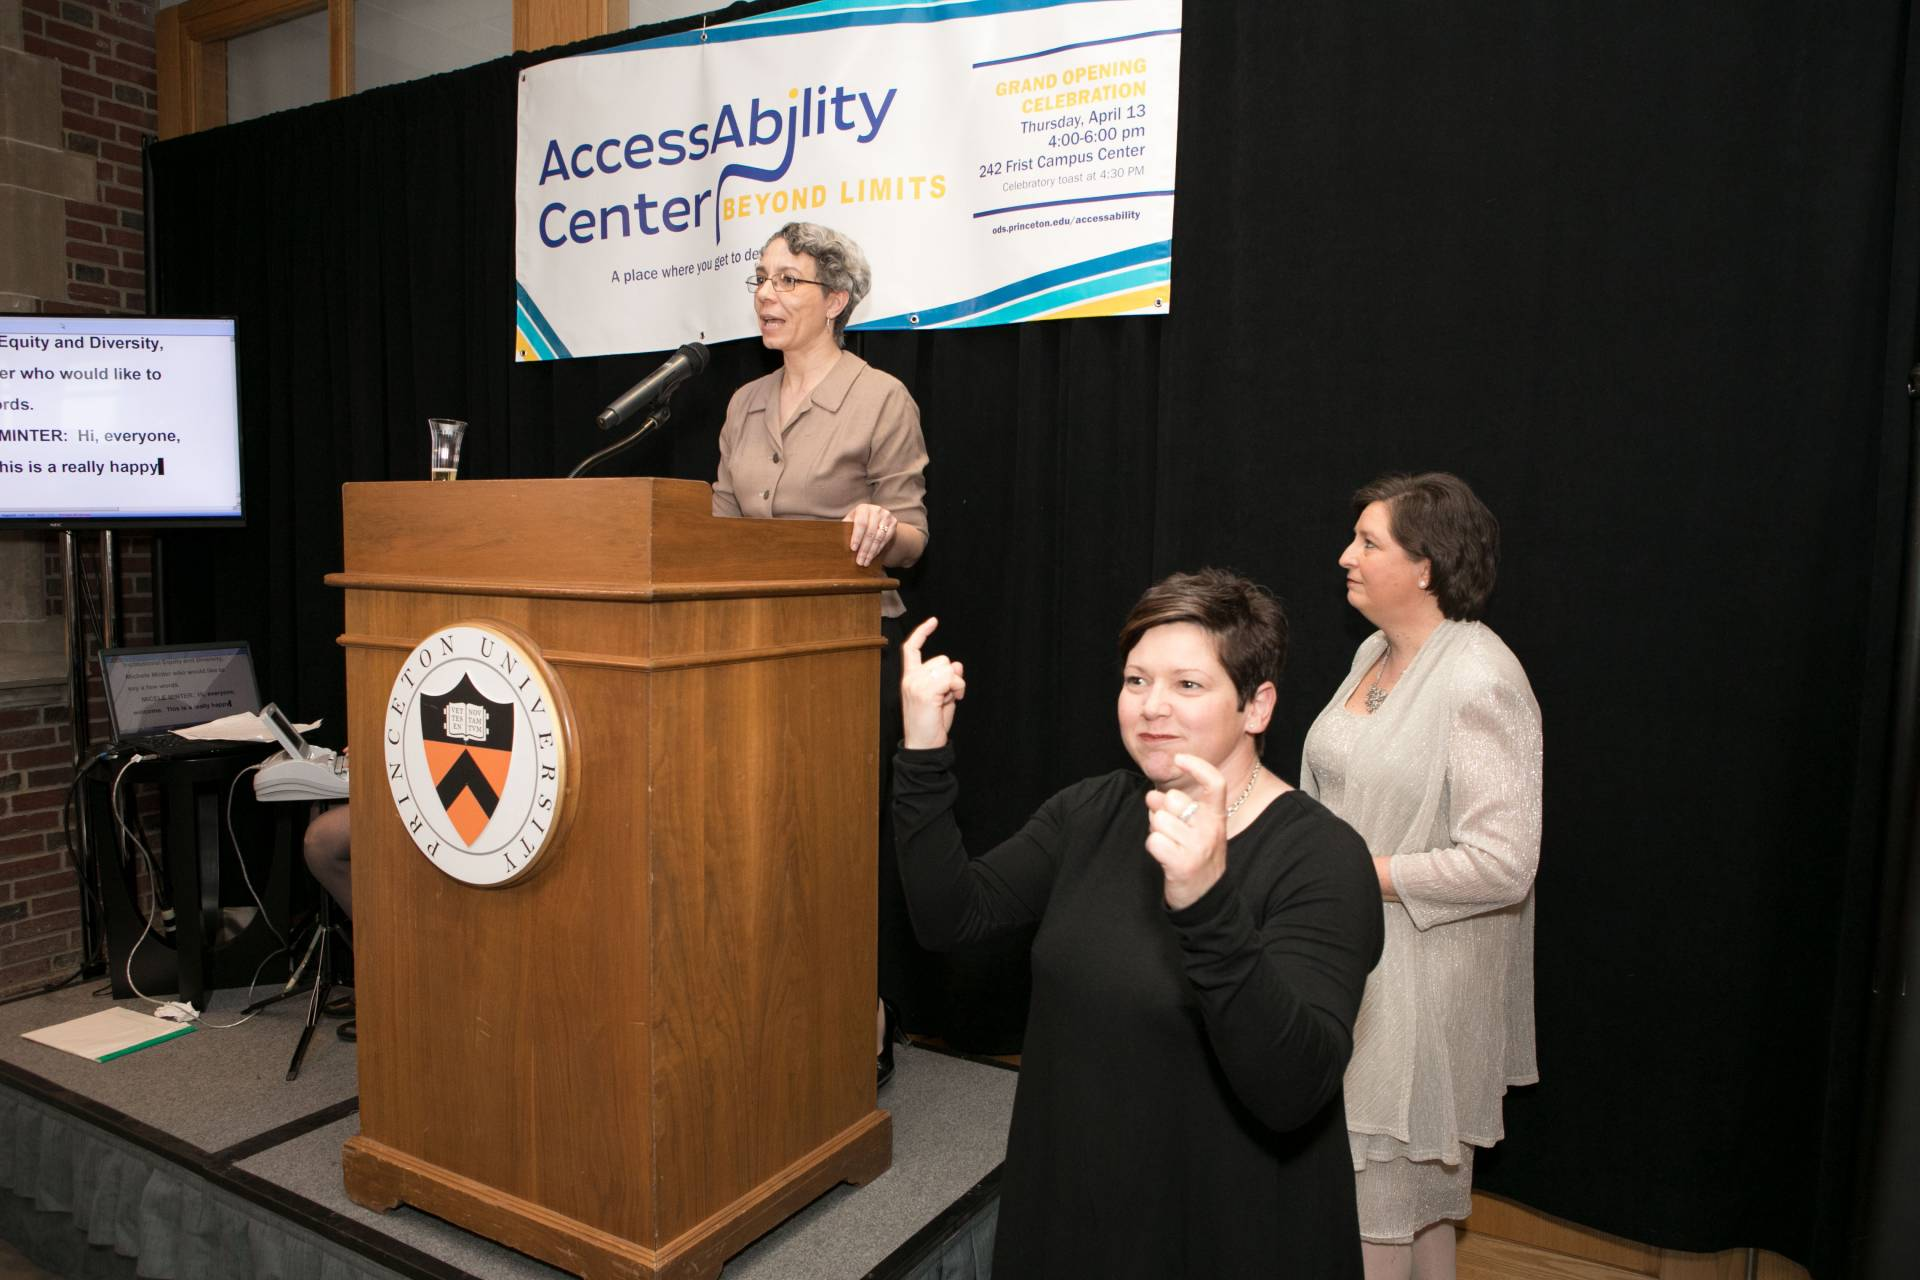 Michele Minter at podium at AccessAbility Center opening